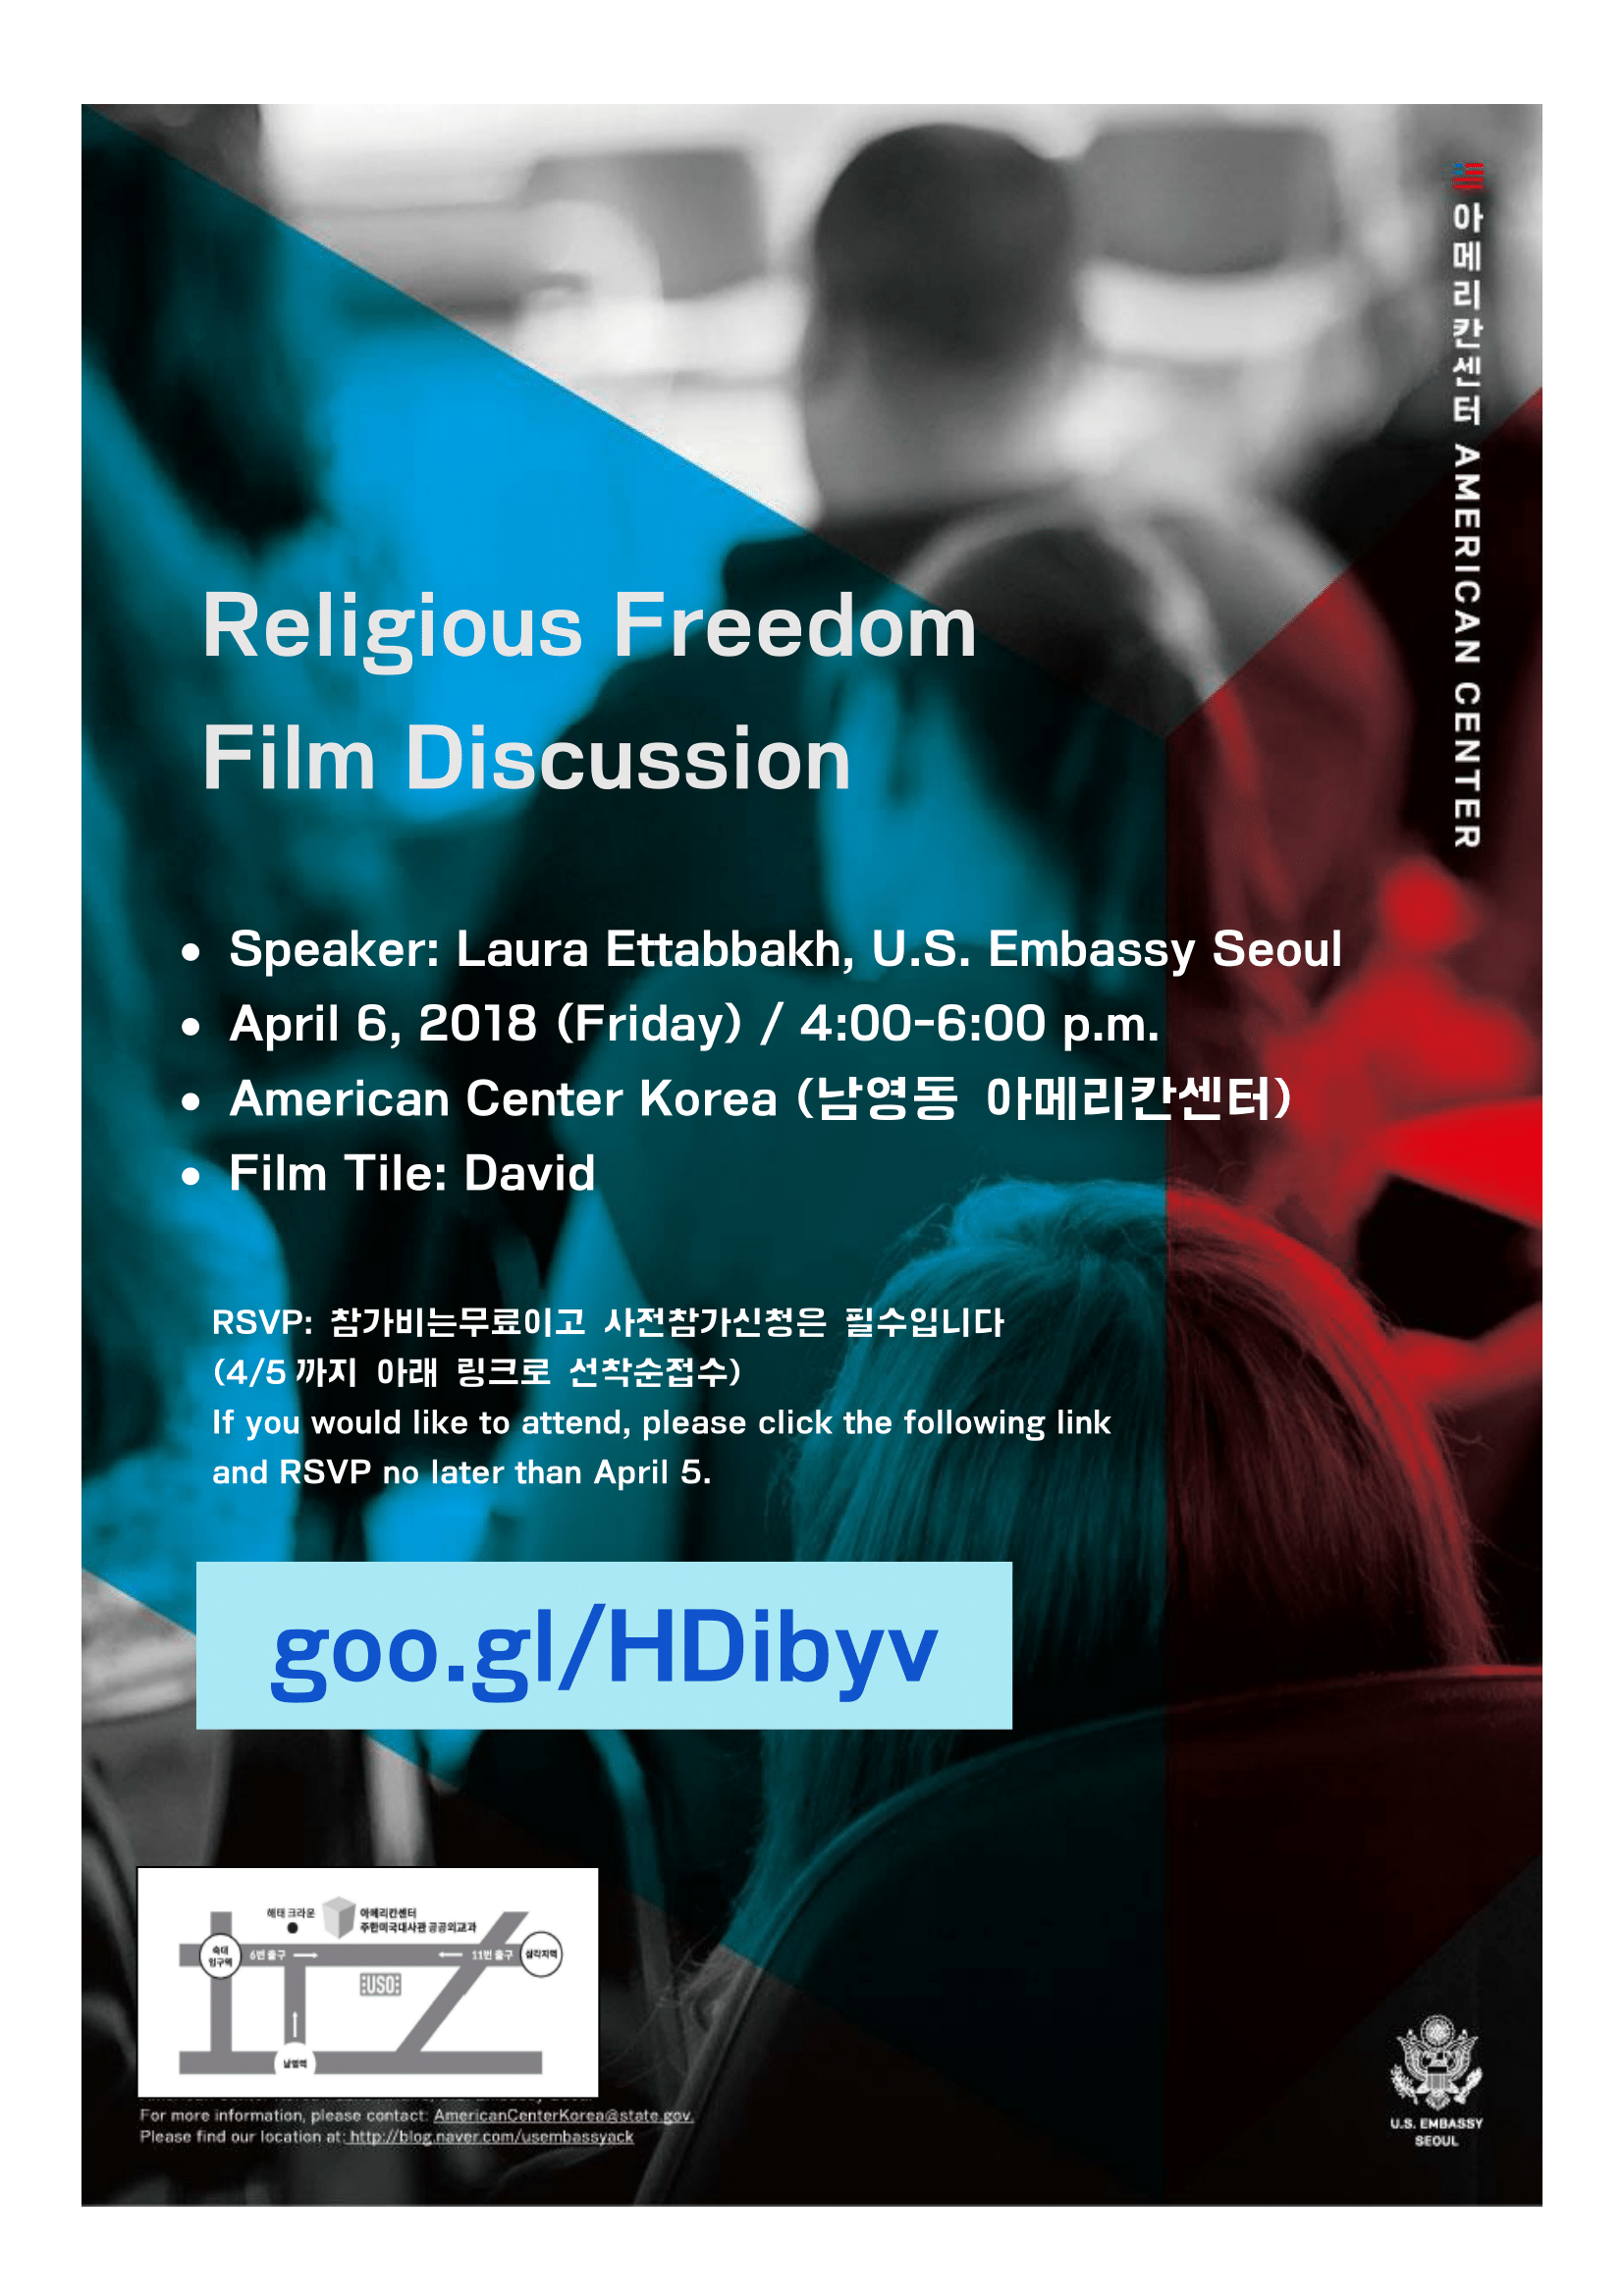 Religious Freedom Film Discussion